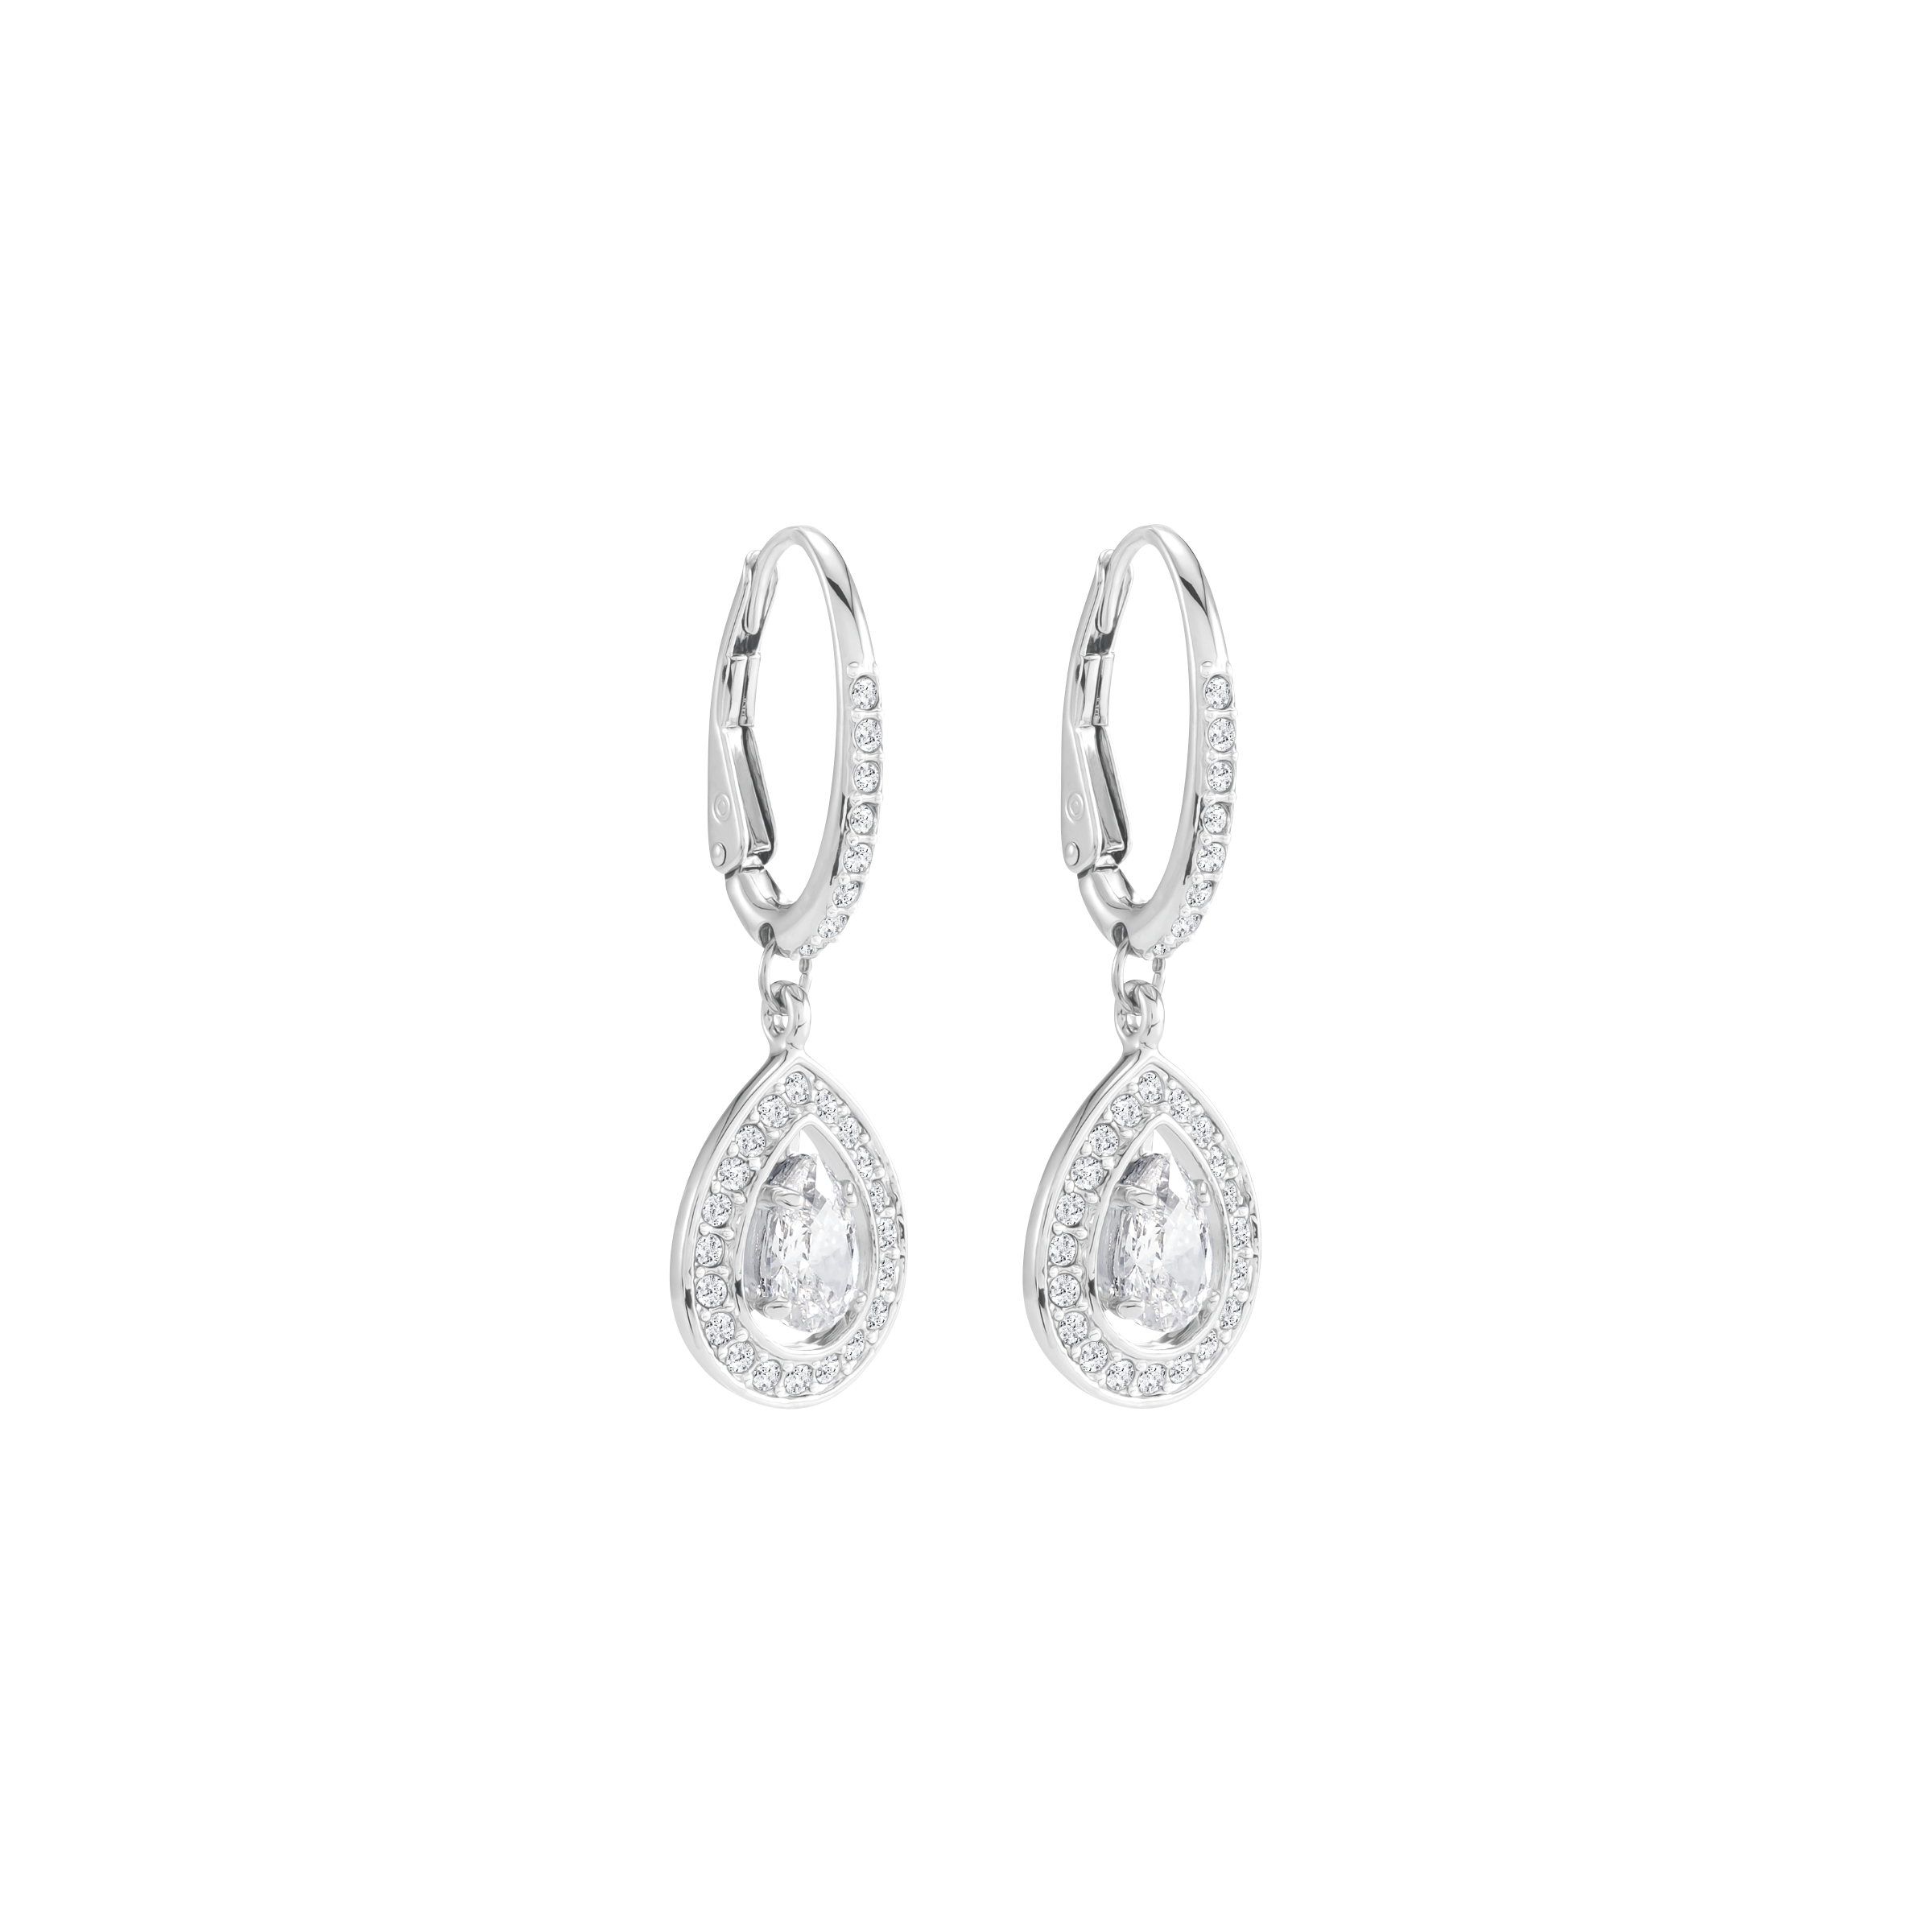 Attract Light Pear Pierced Earrings, White, Rhodium Plating